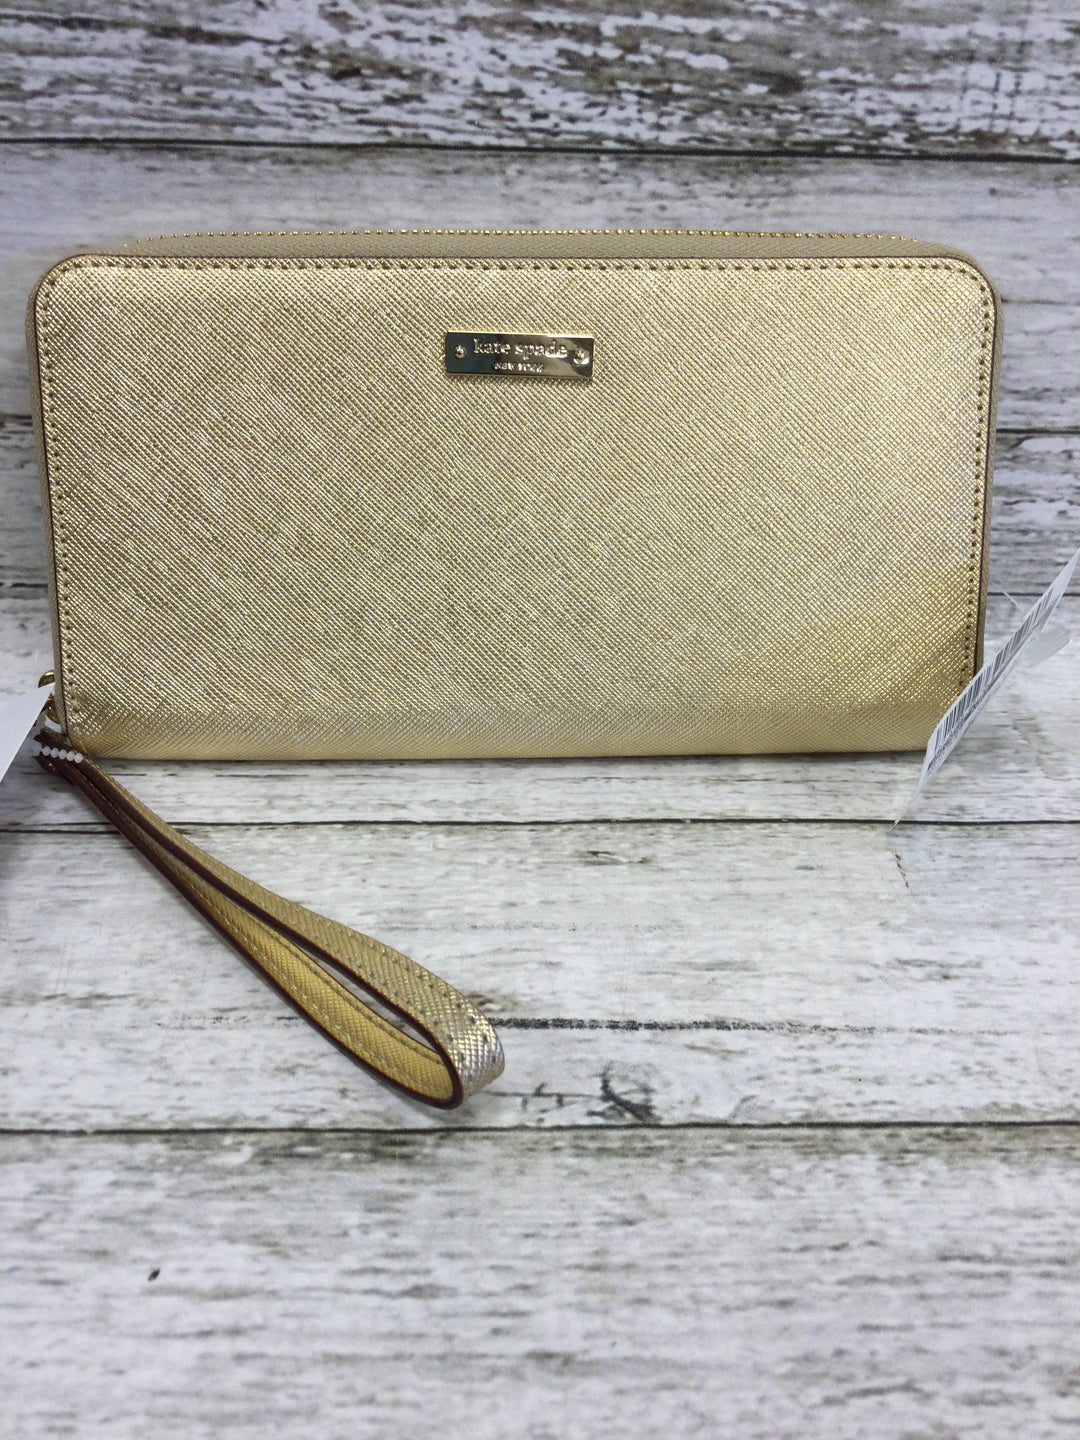 Primary Photo - brand: kate spade, style: wristlet , color: gold , sku: 127-4169-40170